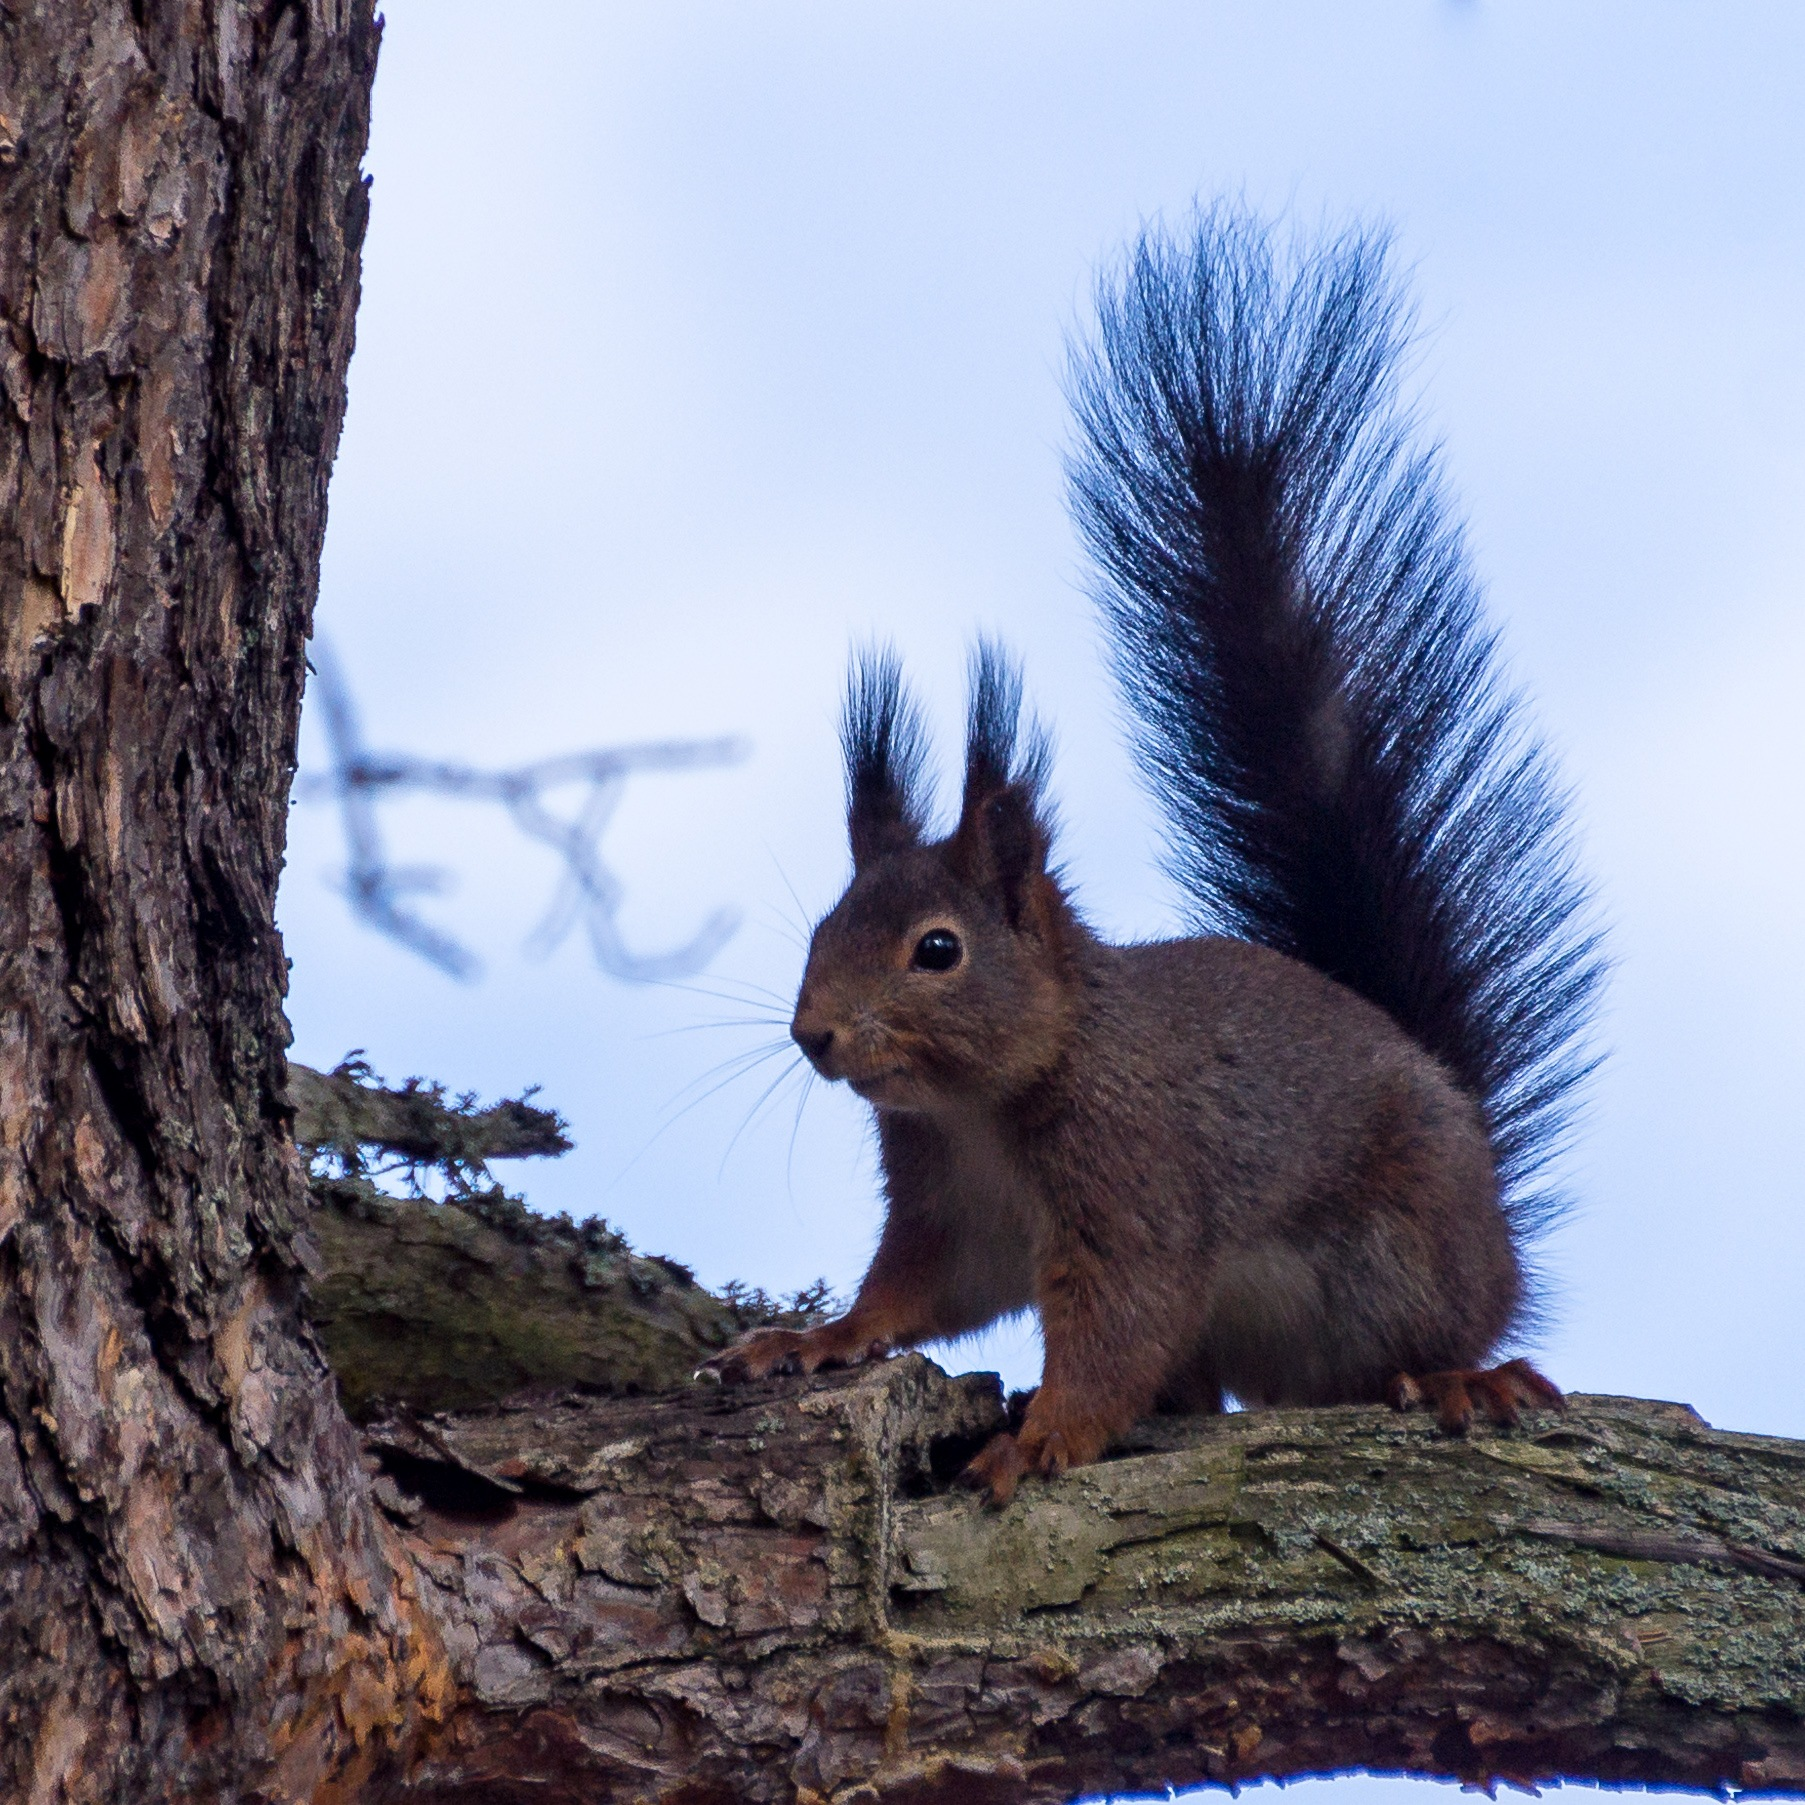 Squirrel with his tail by André Vidén